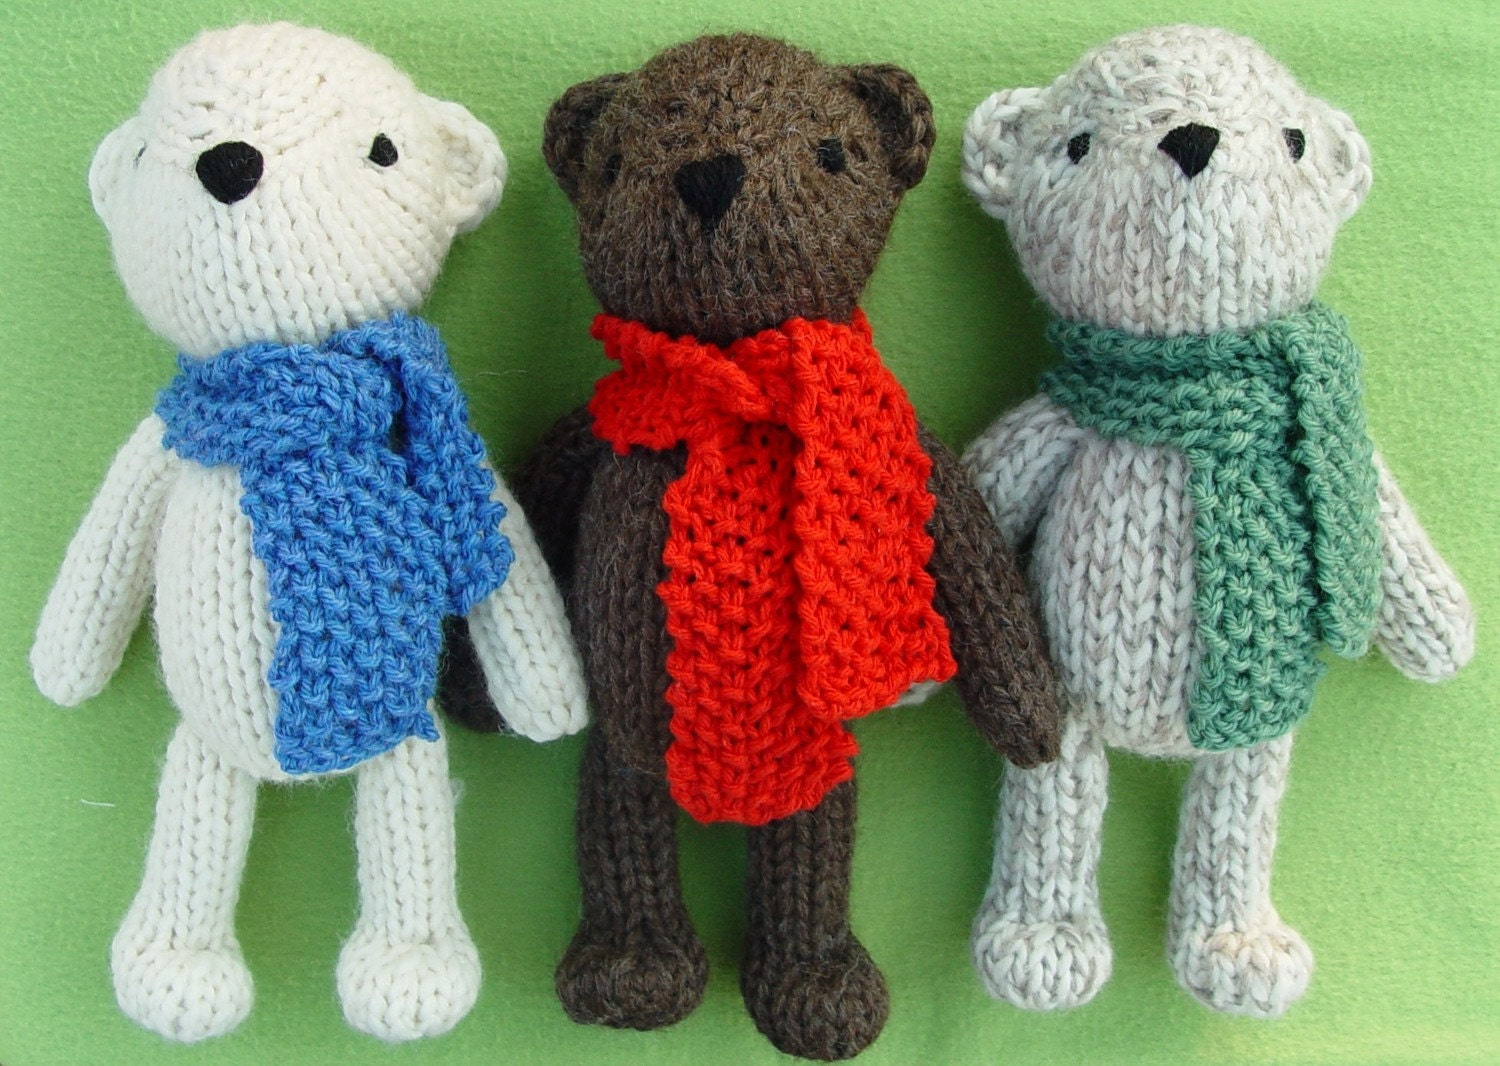 Knitted Teddy Bear Pattern Free : Theodore the Teddy Bear knitting pattern PDF by Yarnigans on Etsy